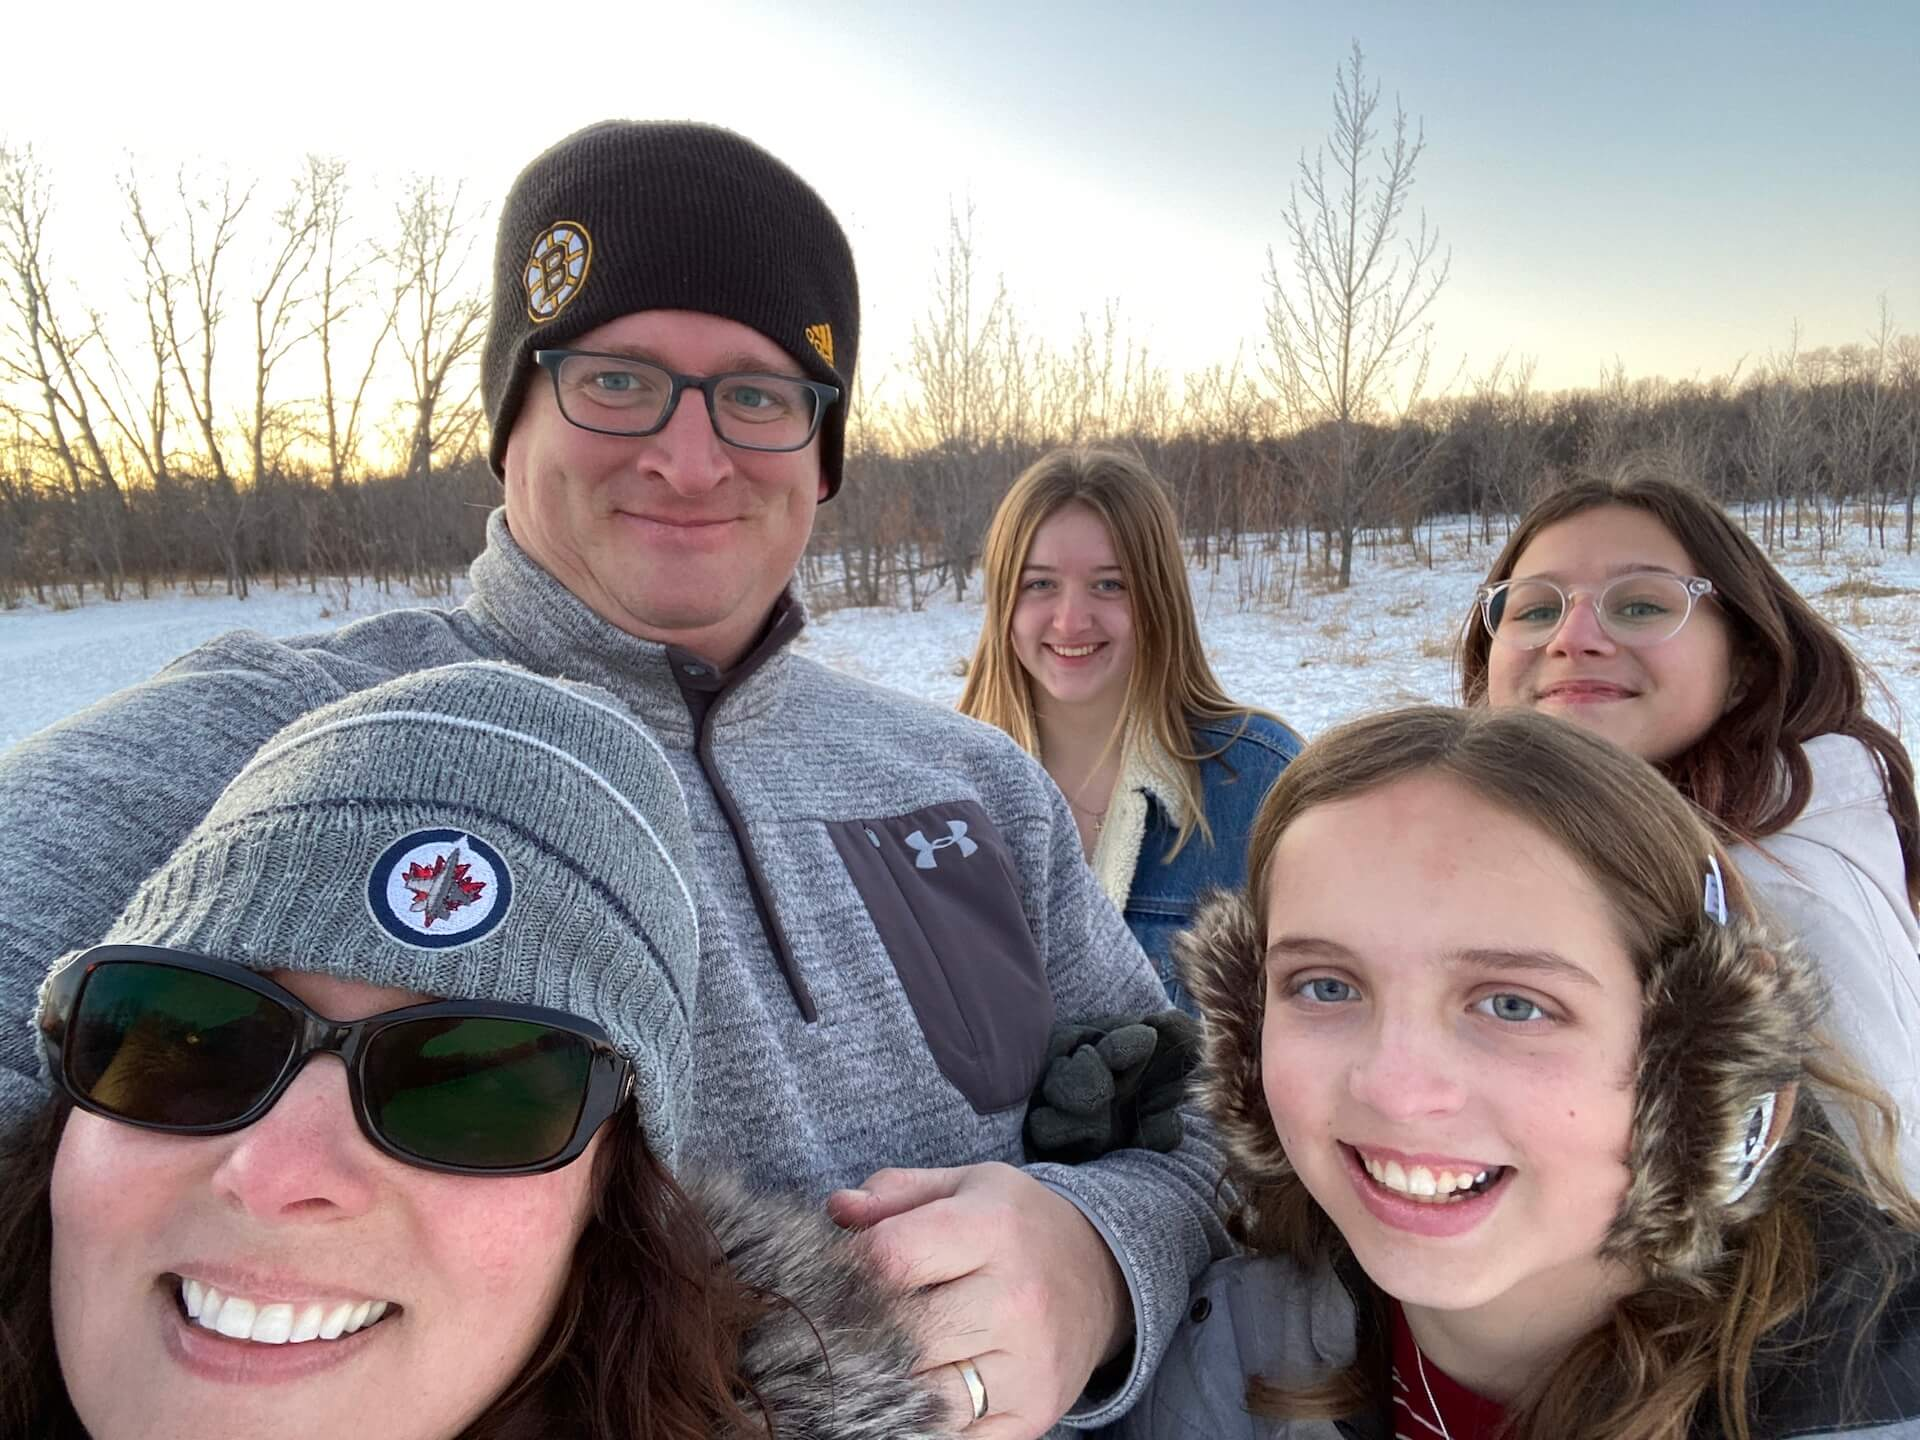 A selfie taken at a dog park in Winnipeg